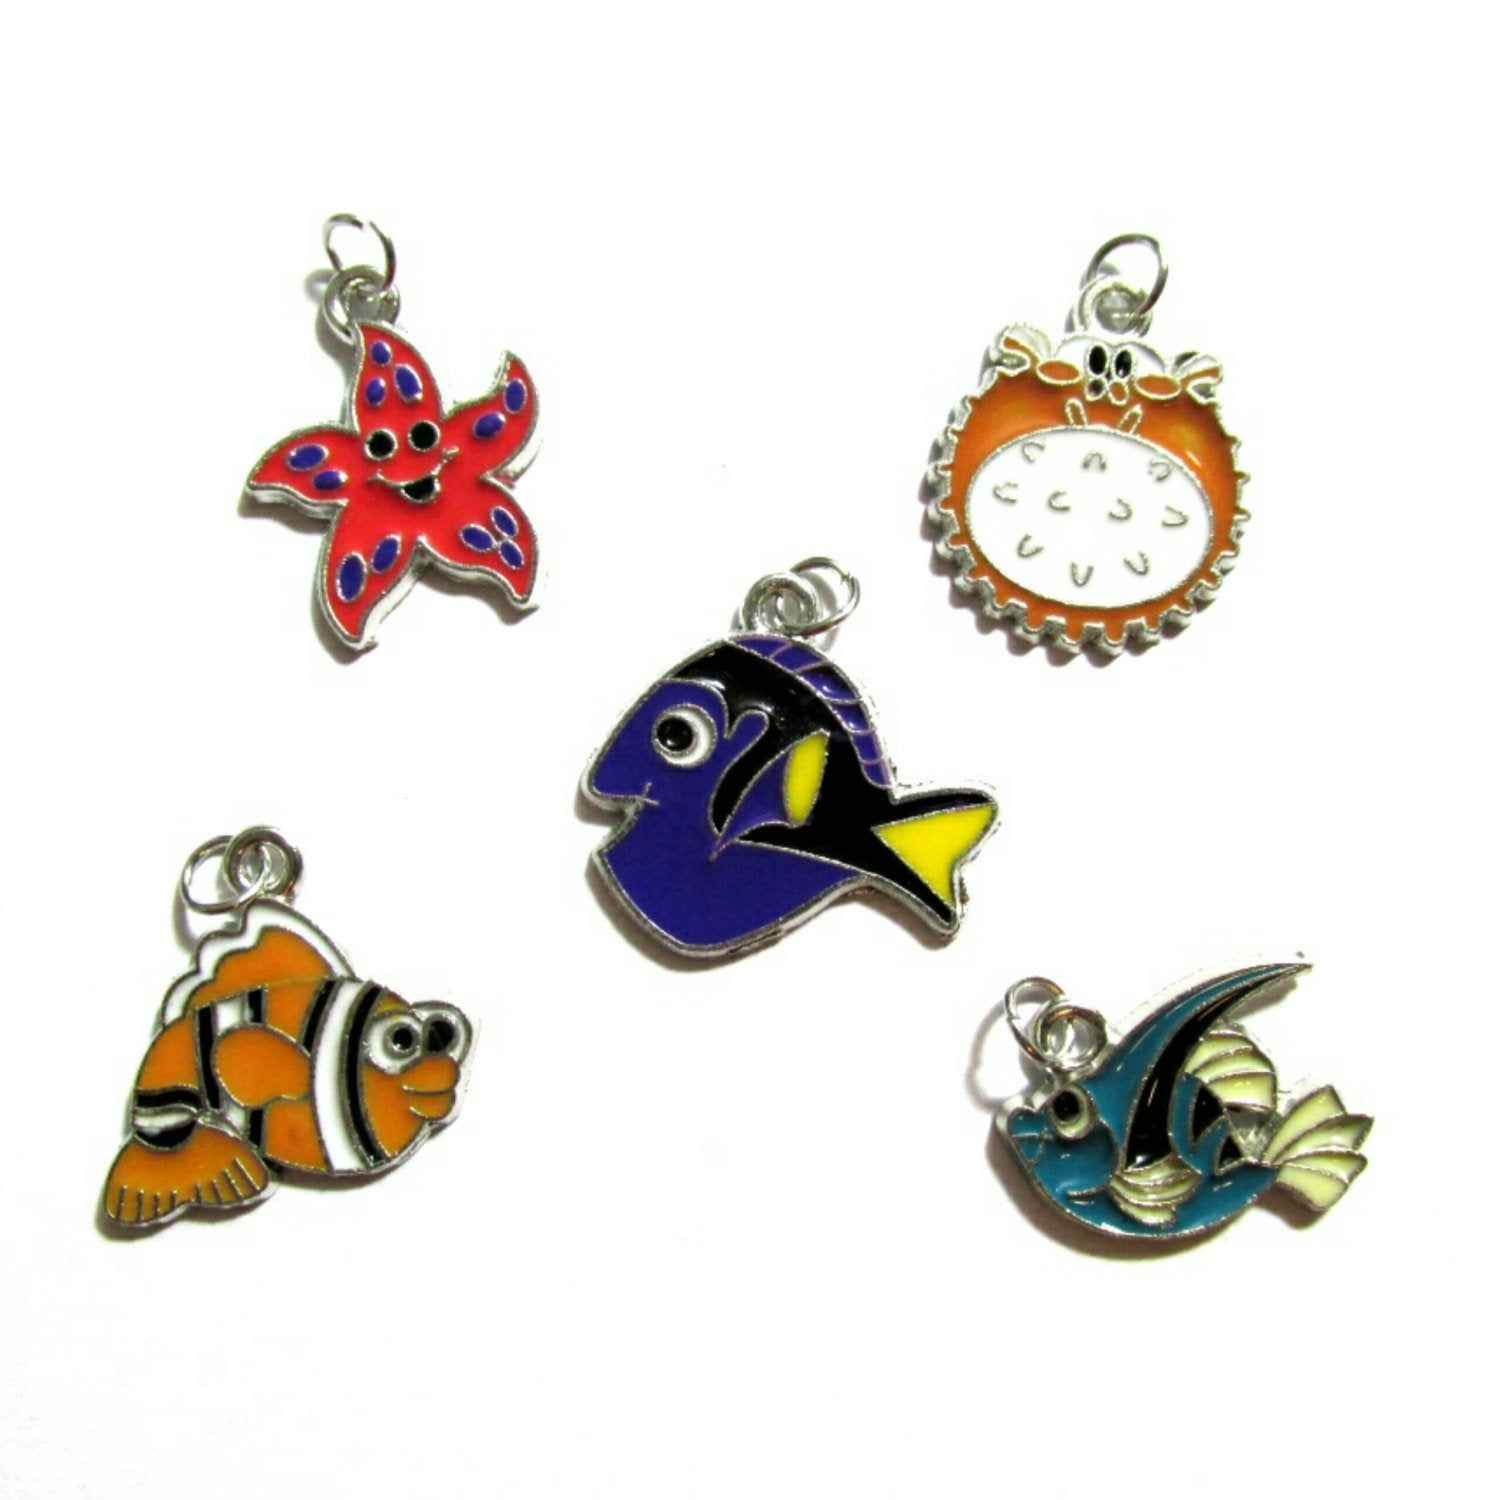 Sea Life Under the Sea Charms